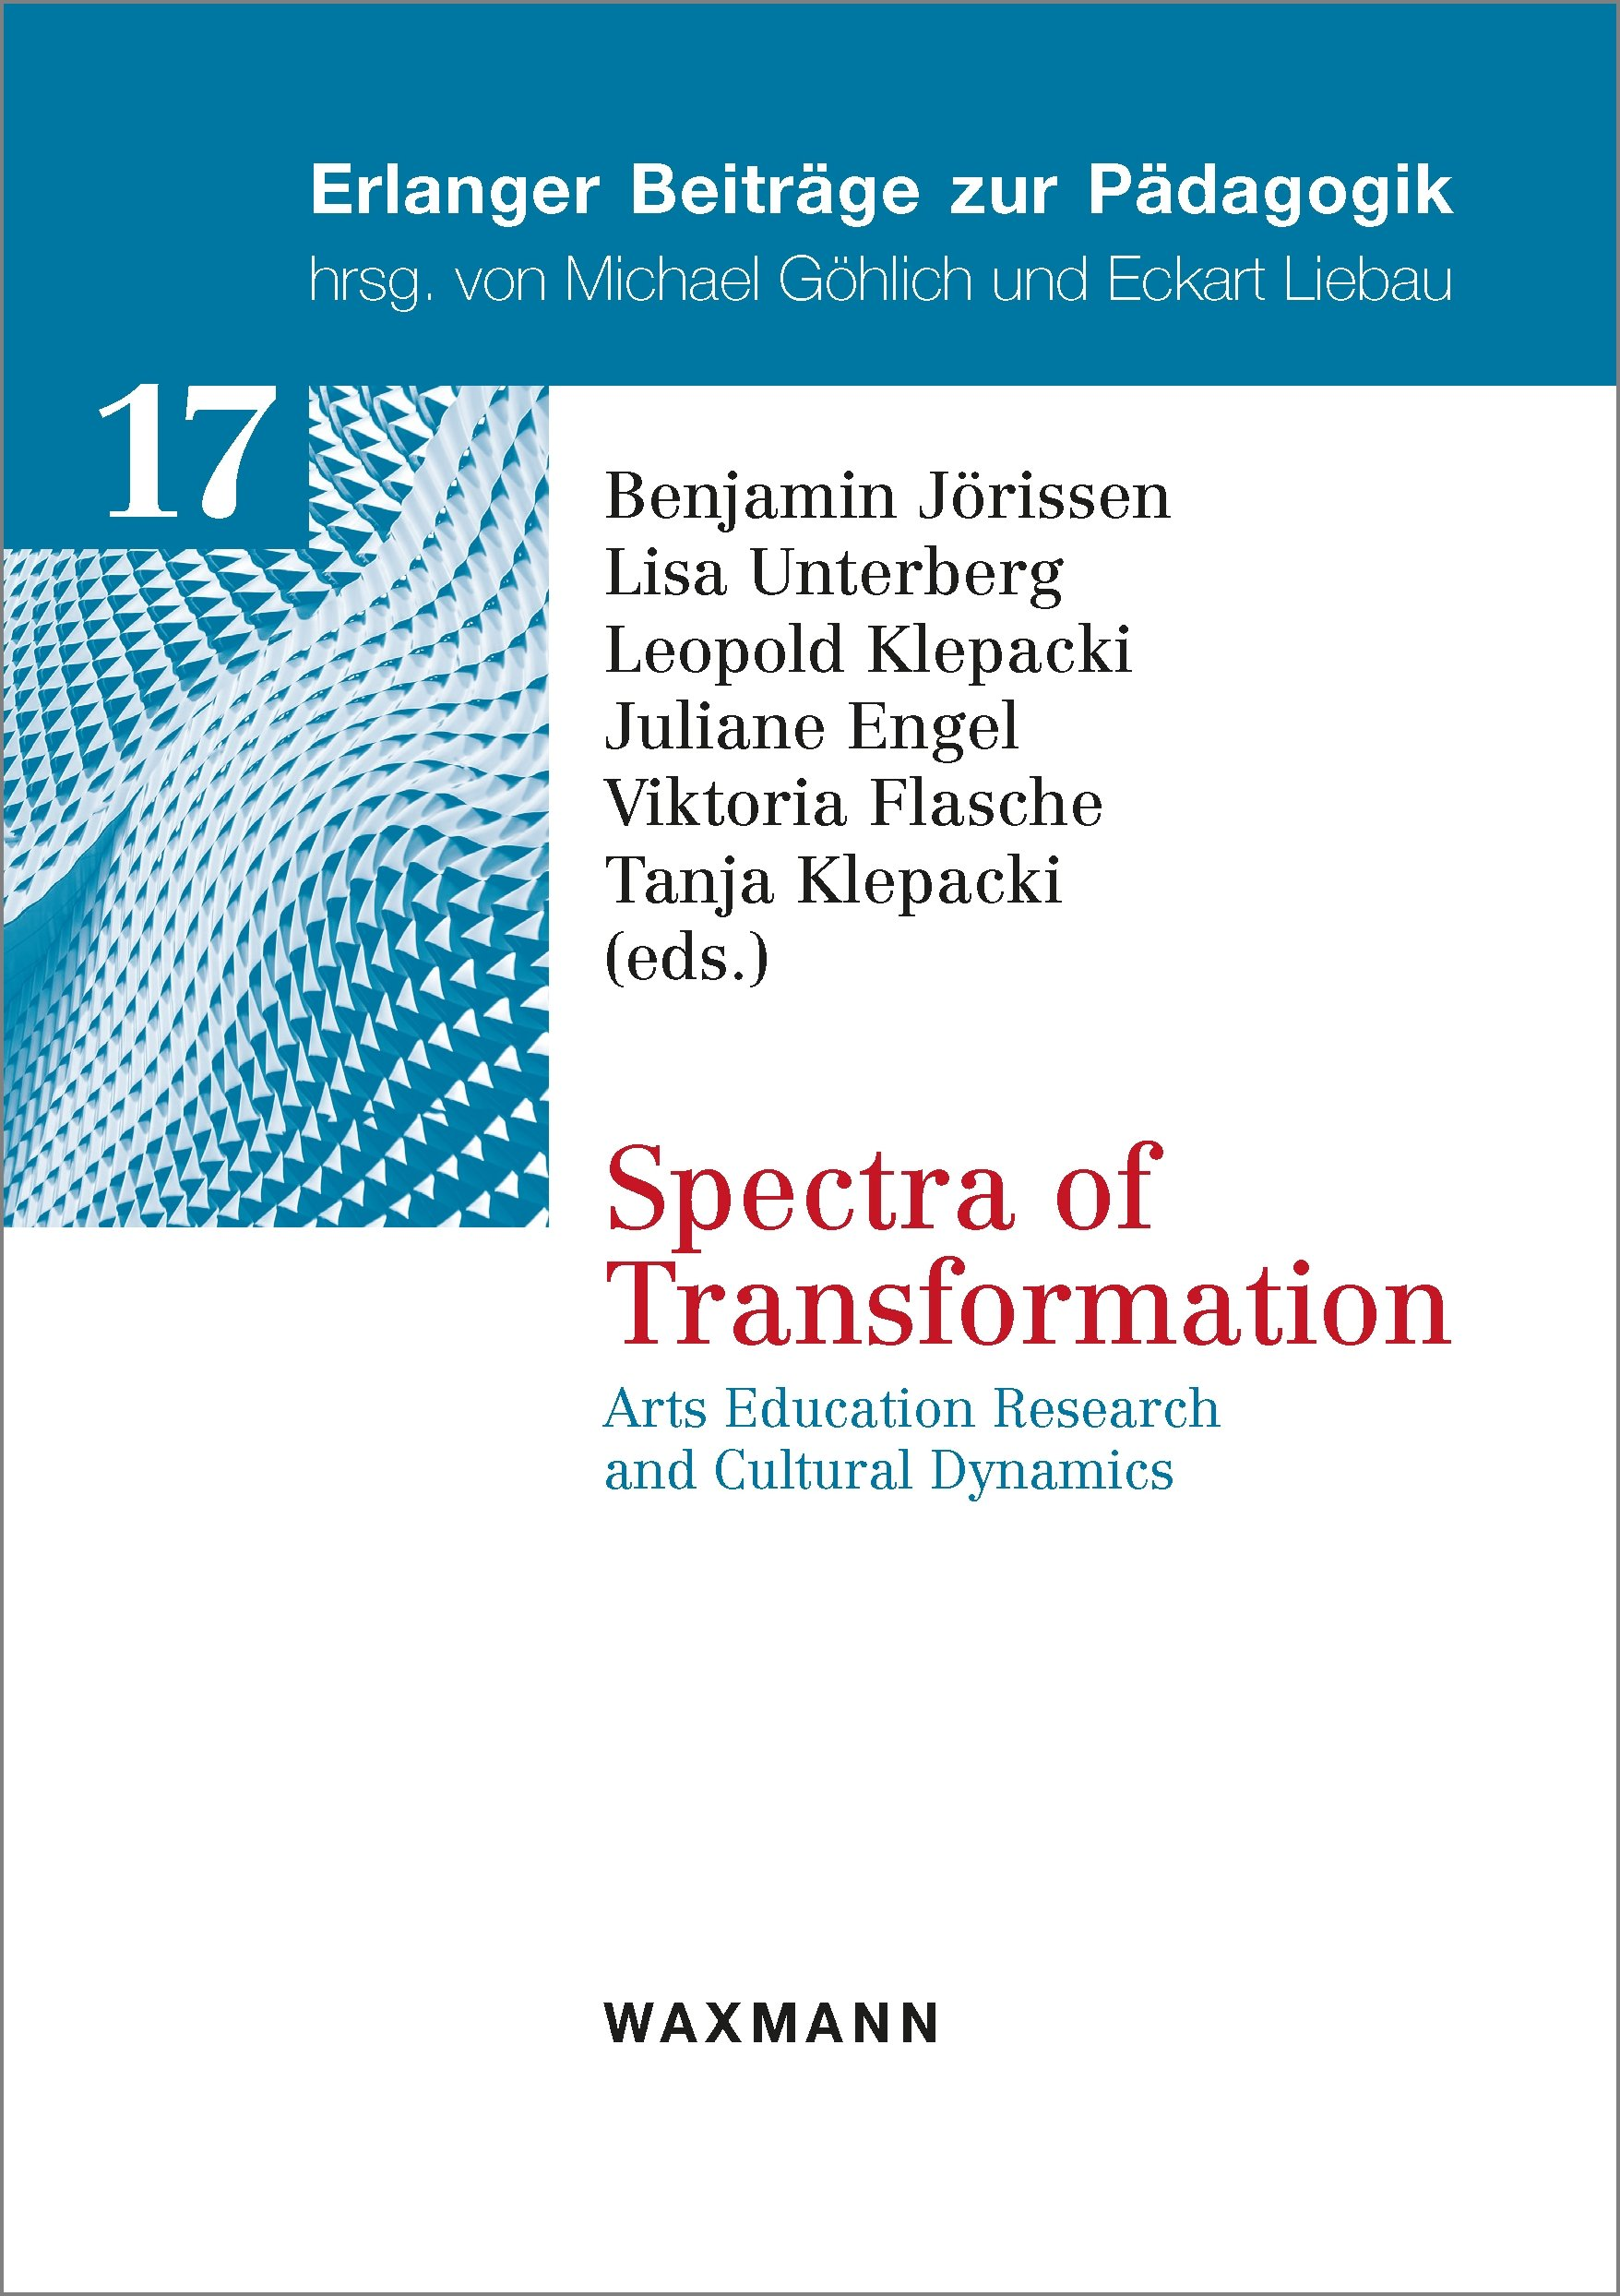 Spectra of Transformation (book cover)